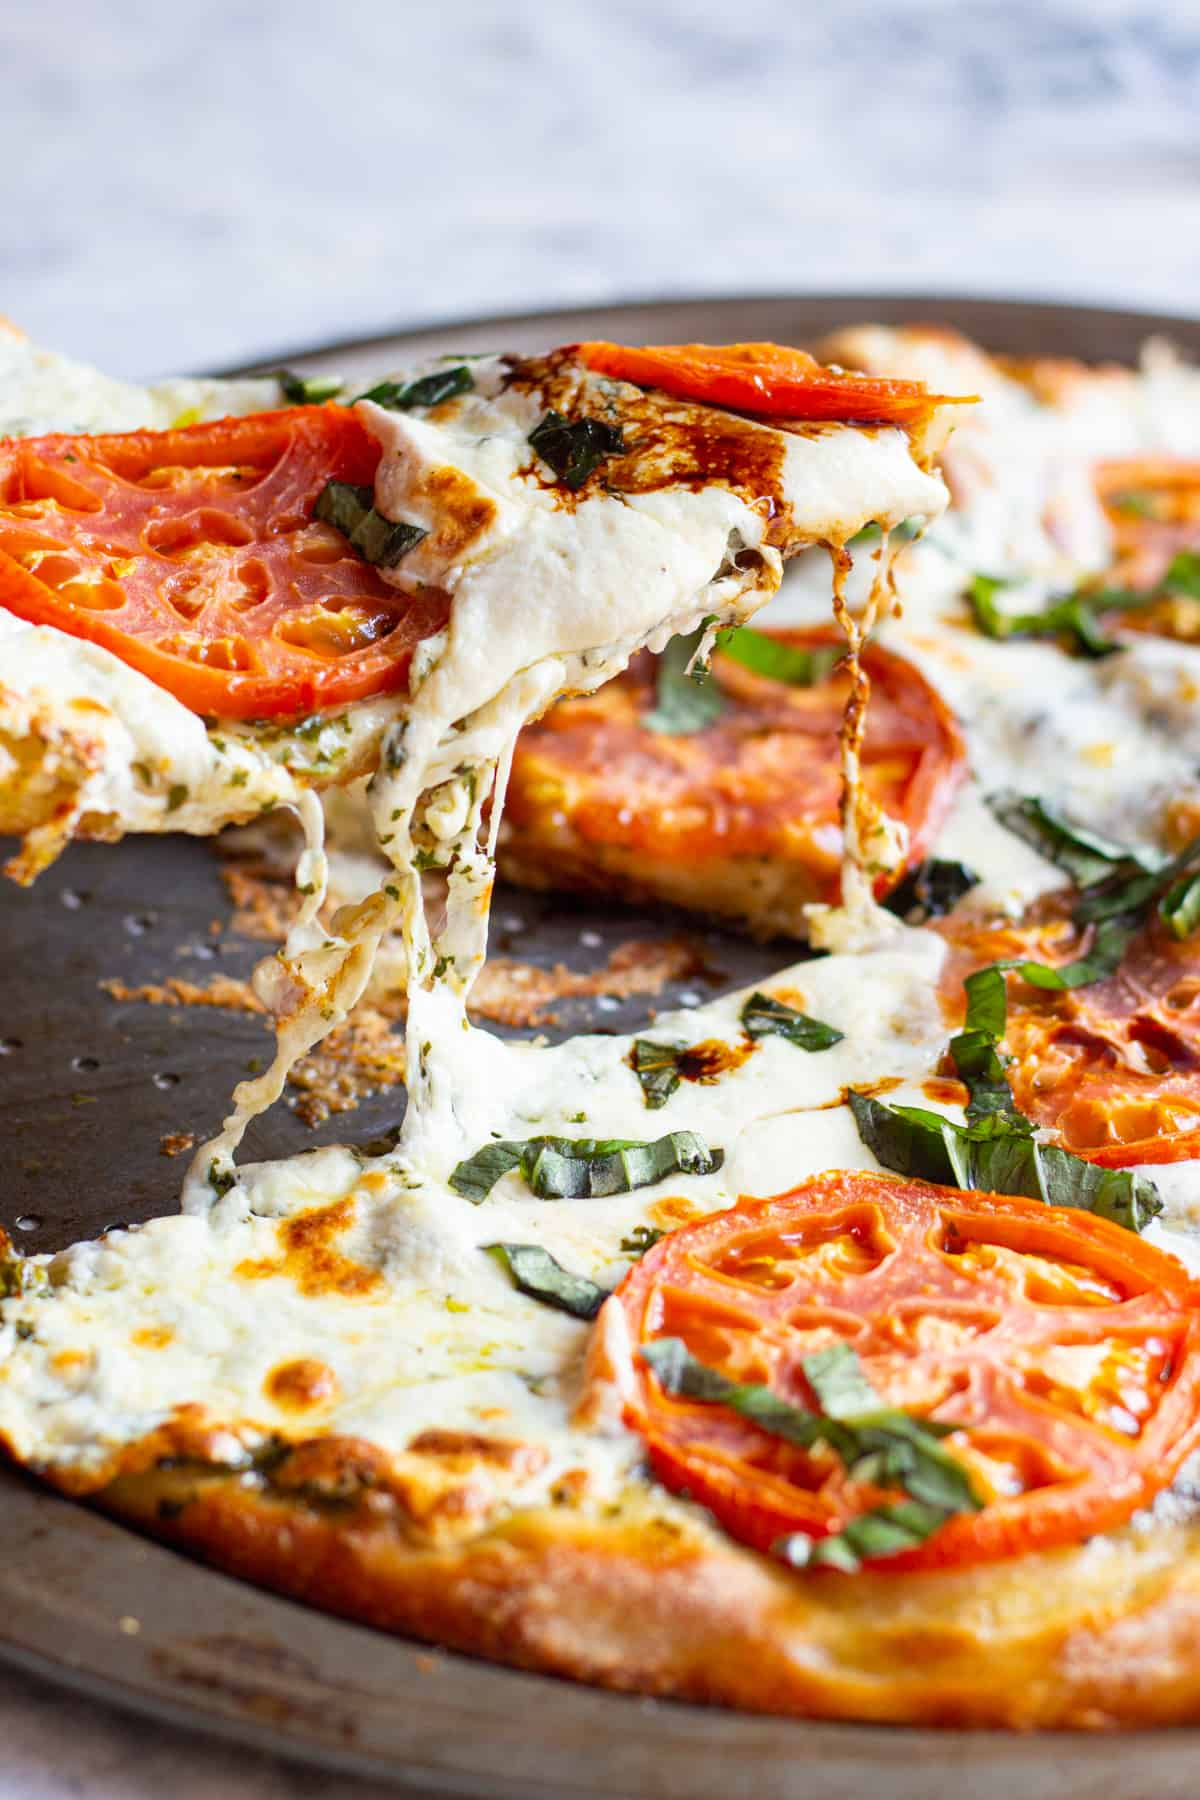 Extra Cheese makes this pizza even better!